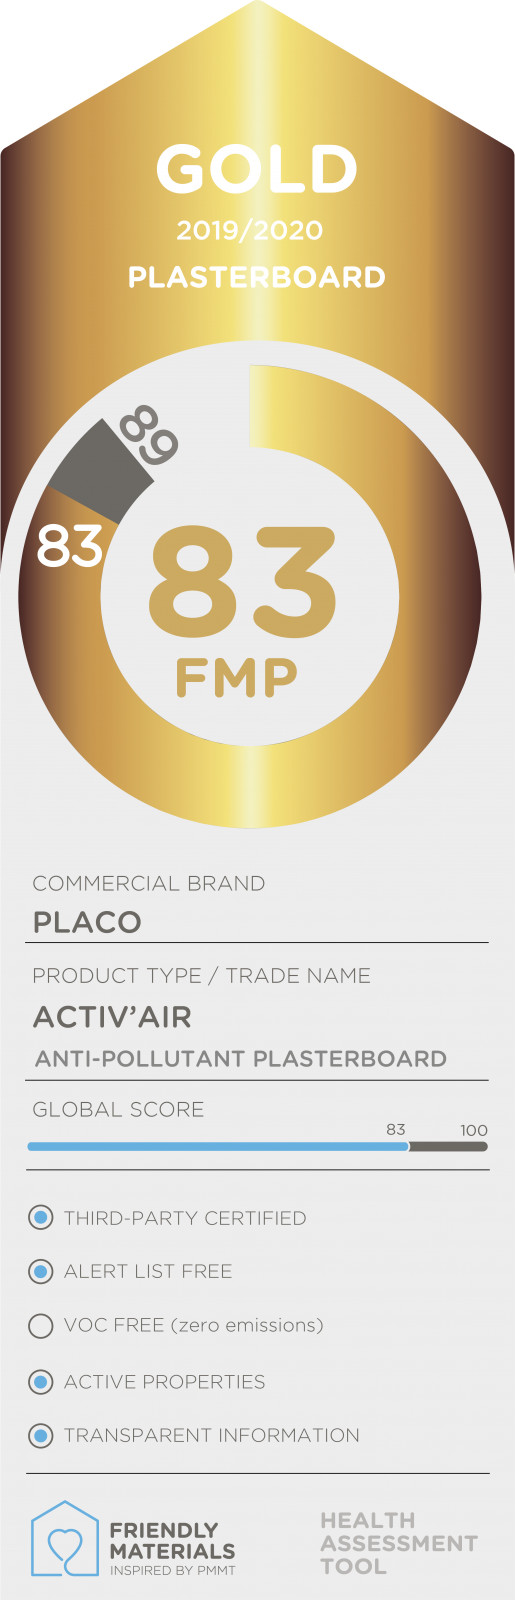 Placo Activ'Air gold 83